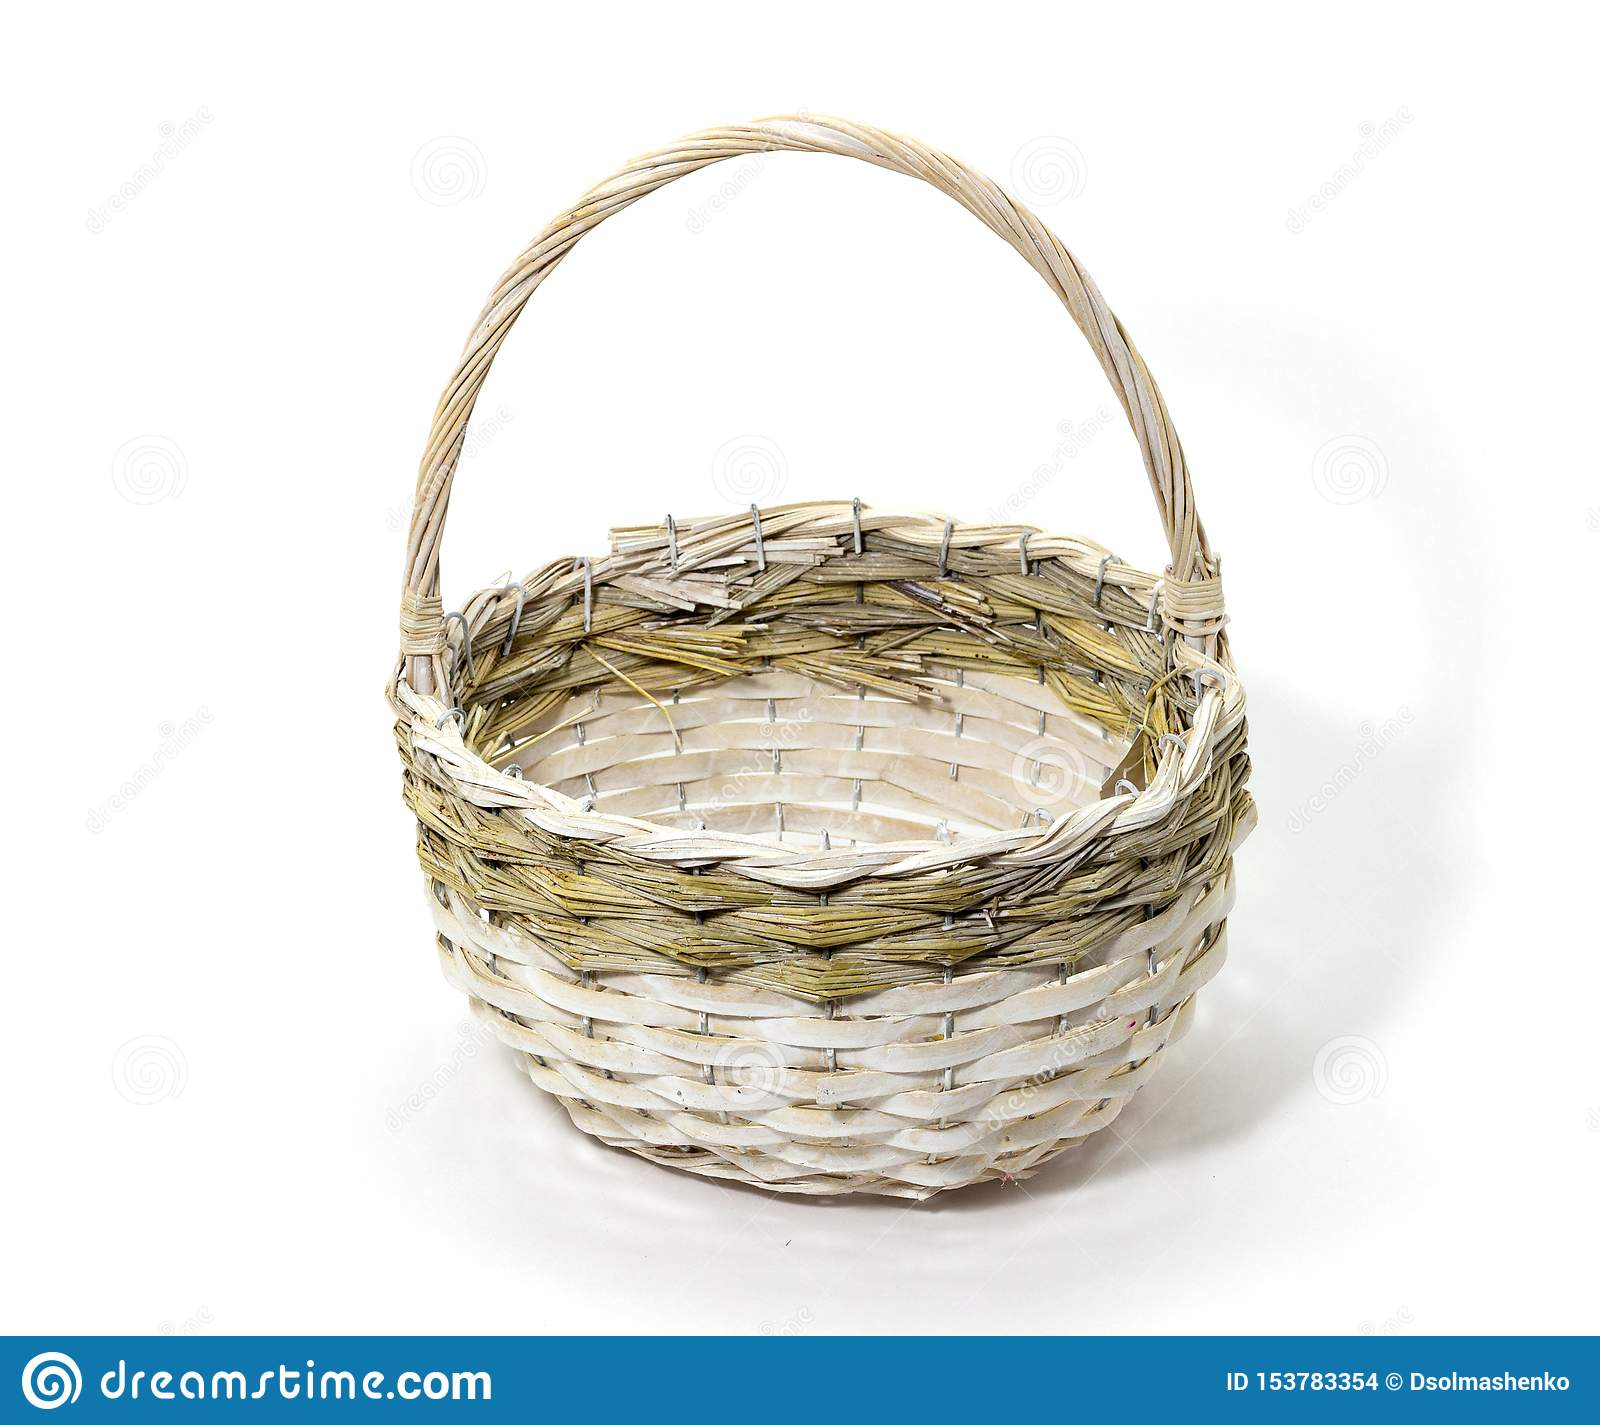 Wicker basket of natural materials on a white background folk crafts